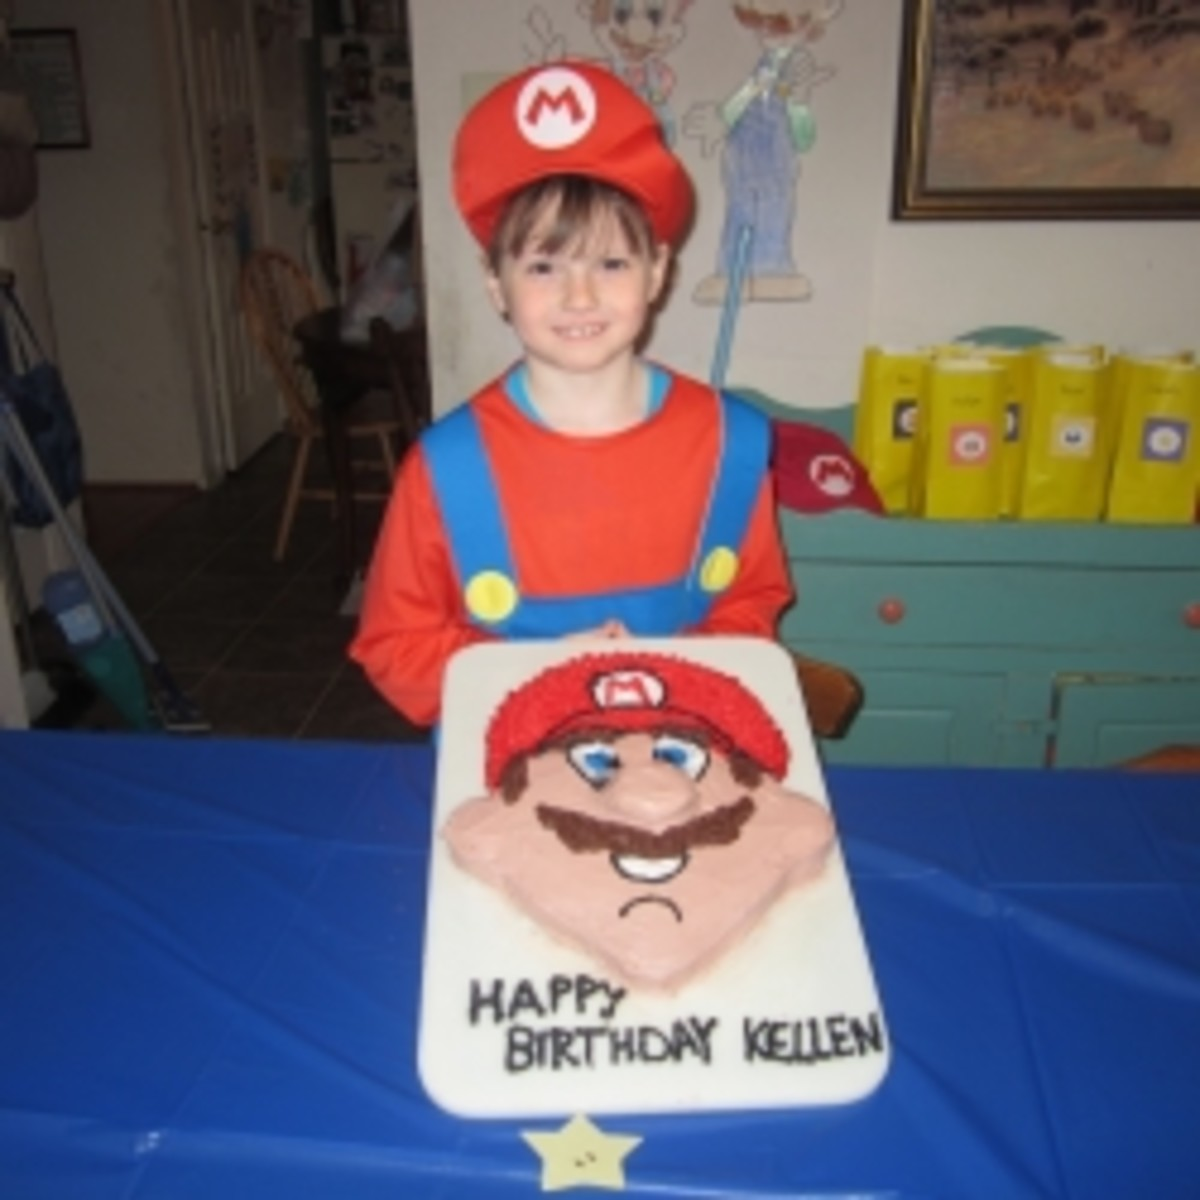 Super Mario Bros. Birthday Party Ideas